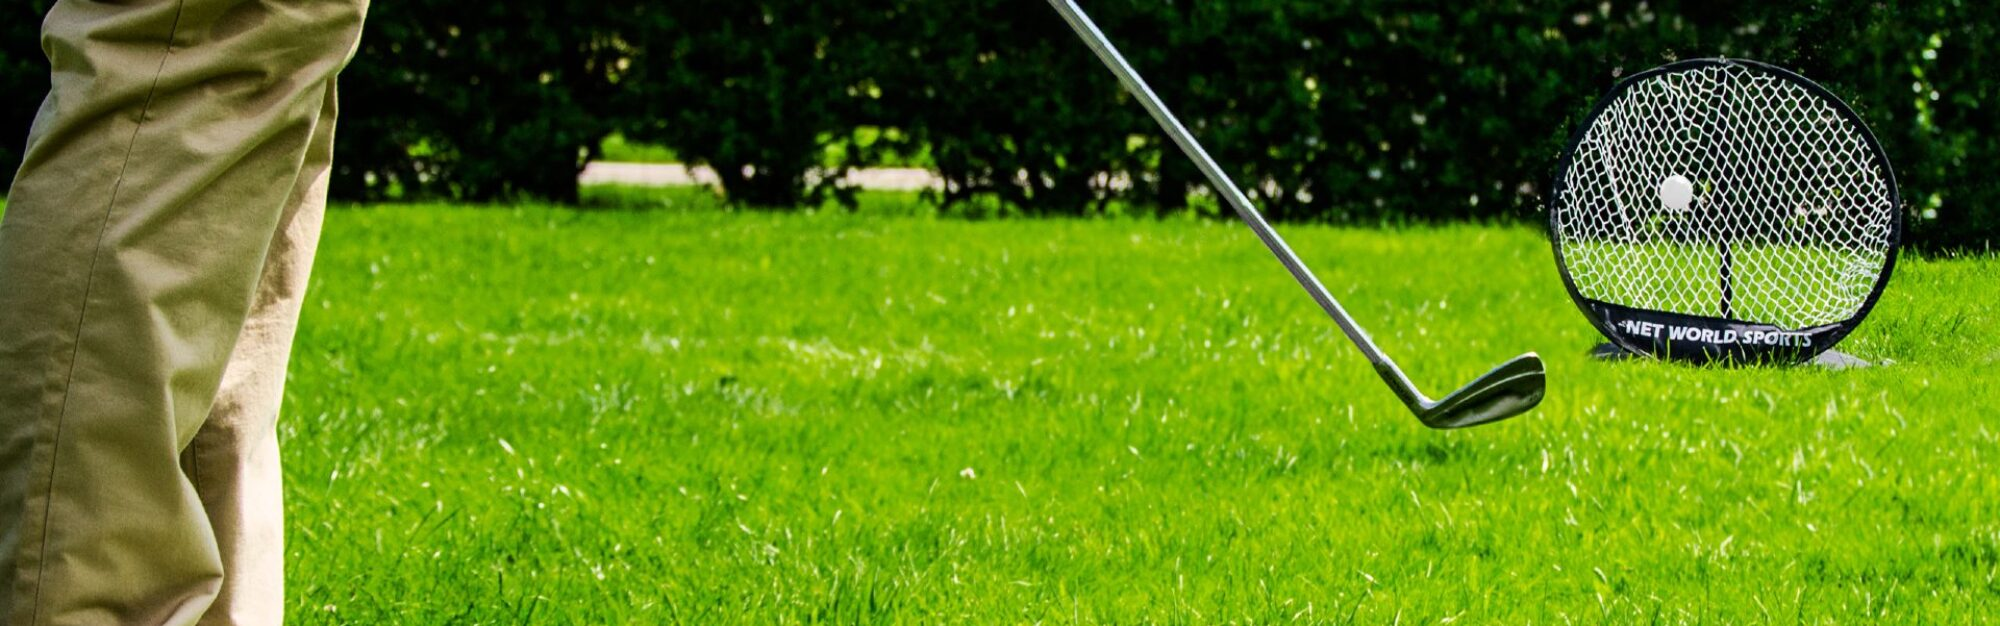 WIN: The ultimate home golf setup from Net World Sports!